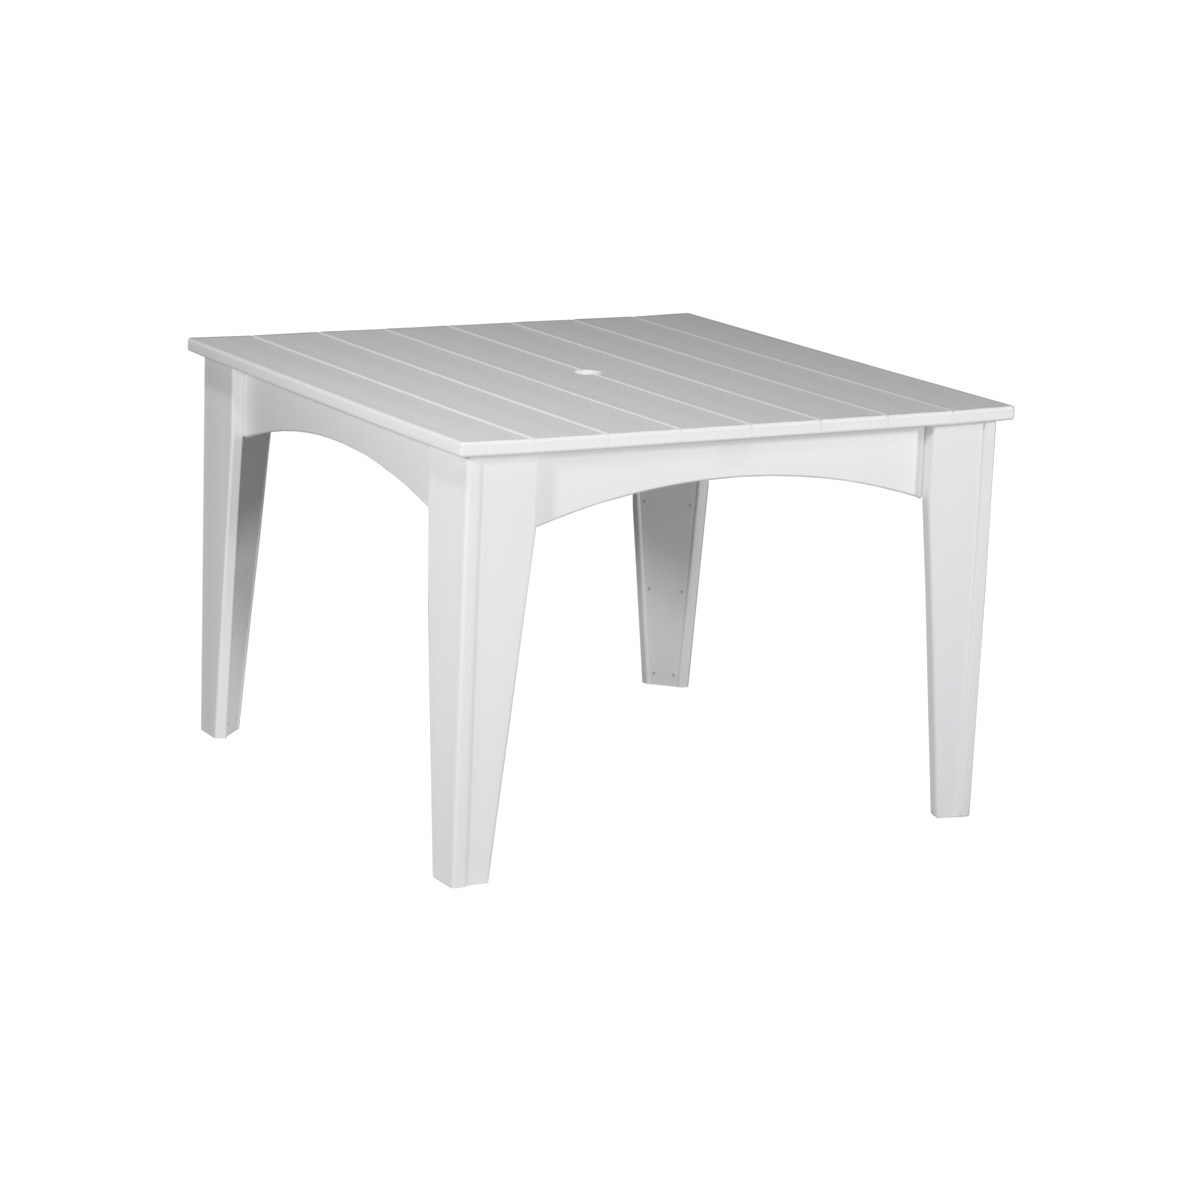 Suffolk Simplicity Reclaimed Wood Square Industrial Coffee: Island Square Table